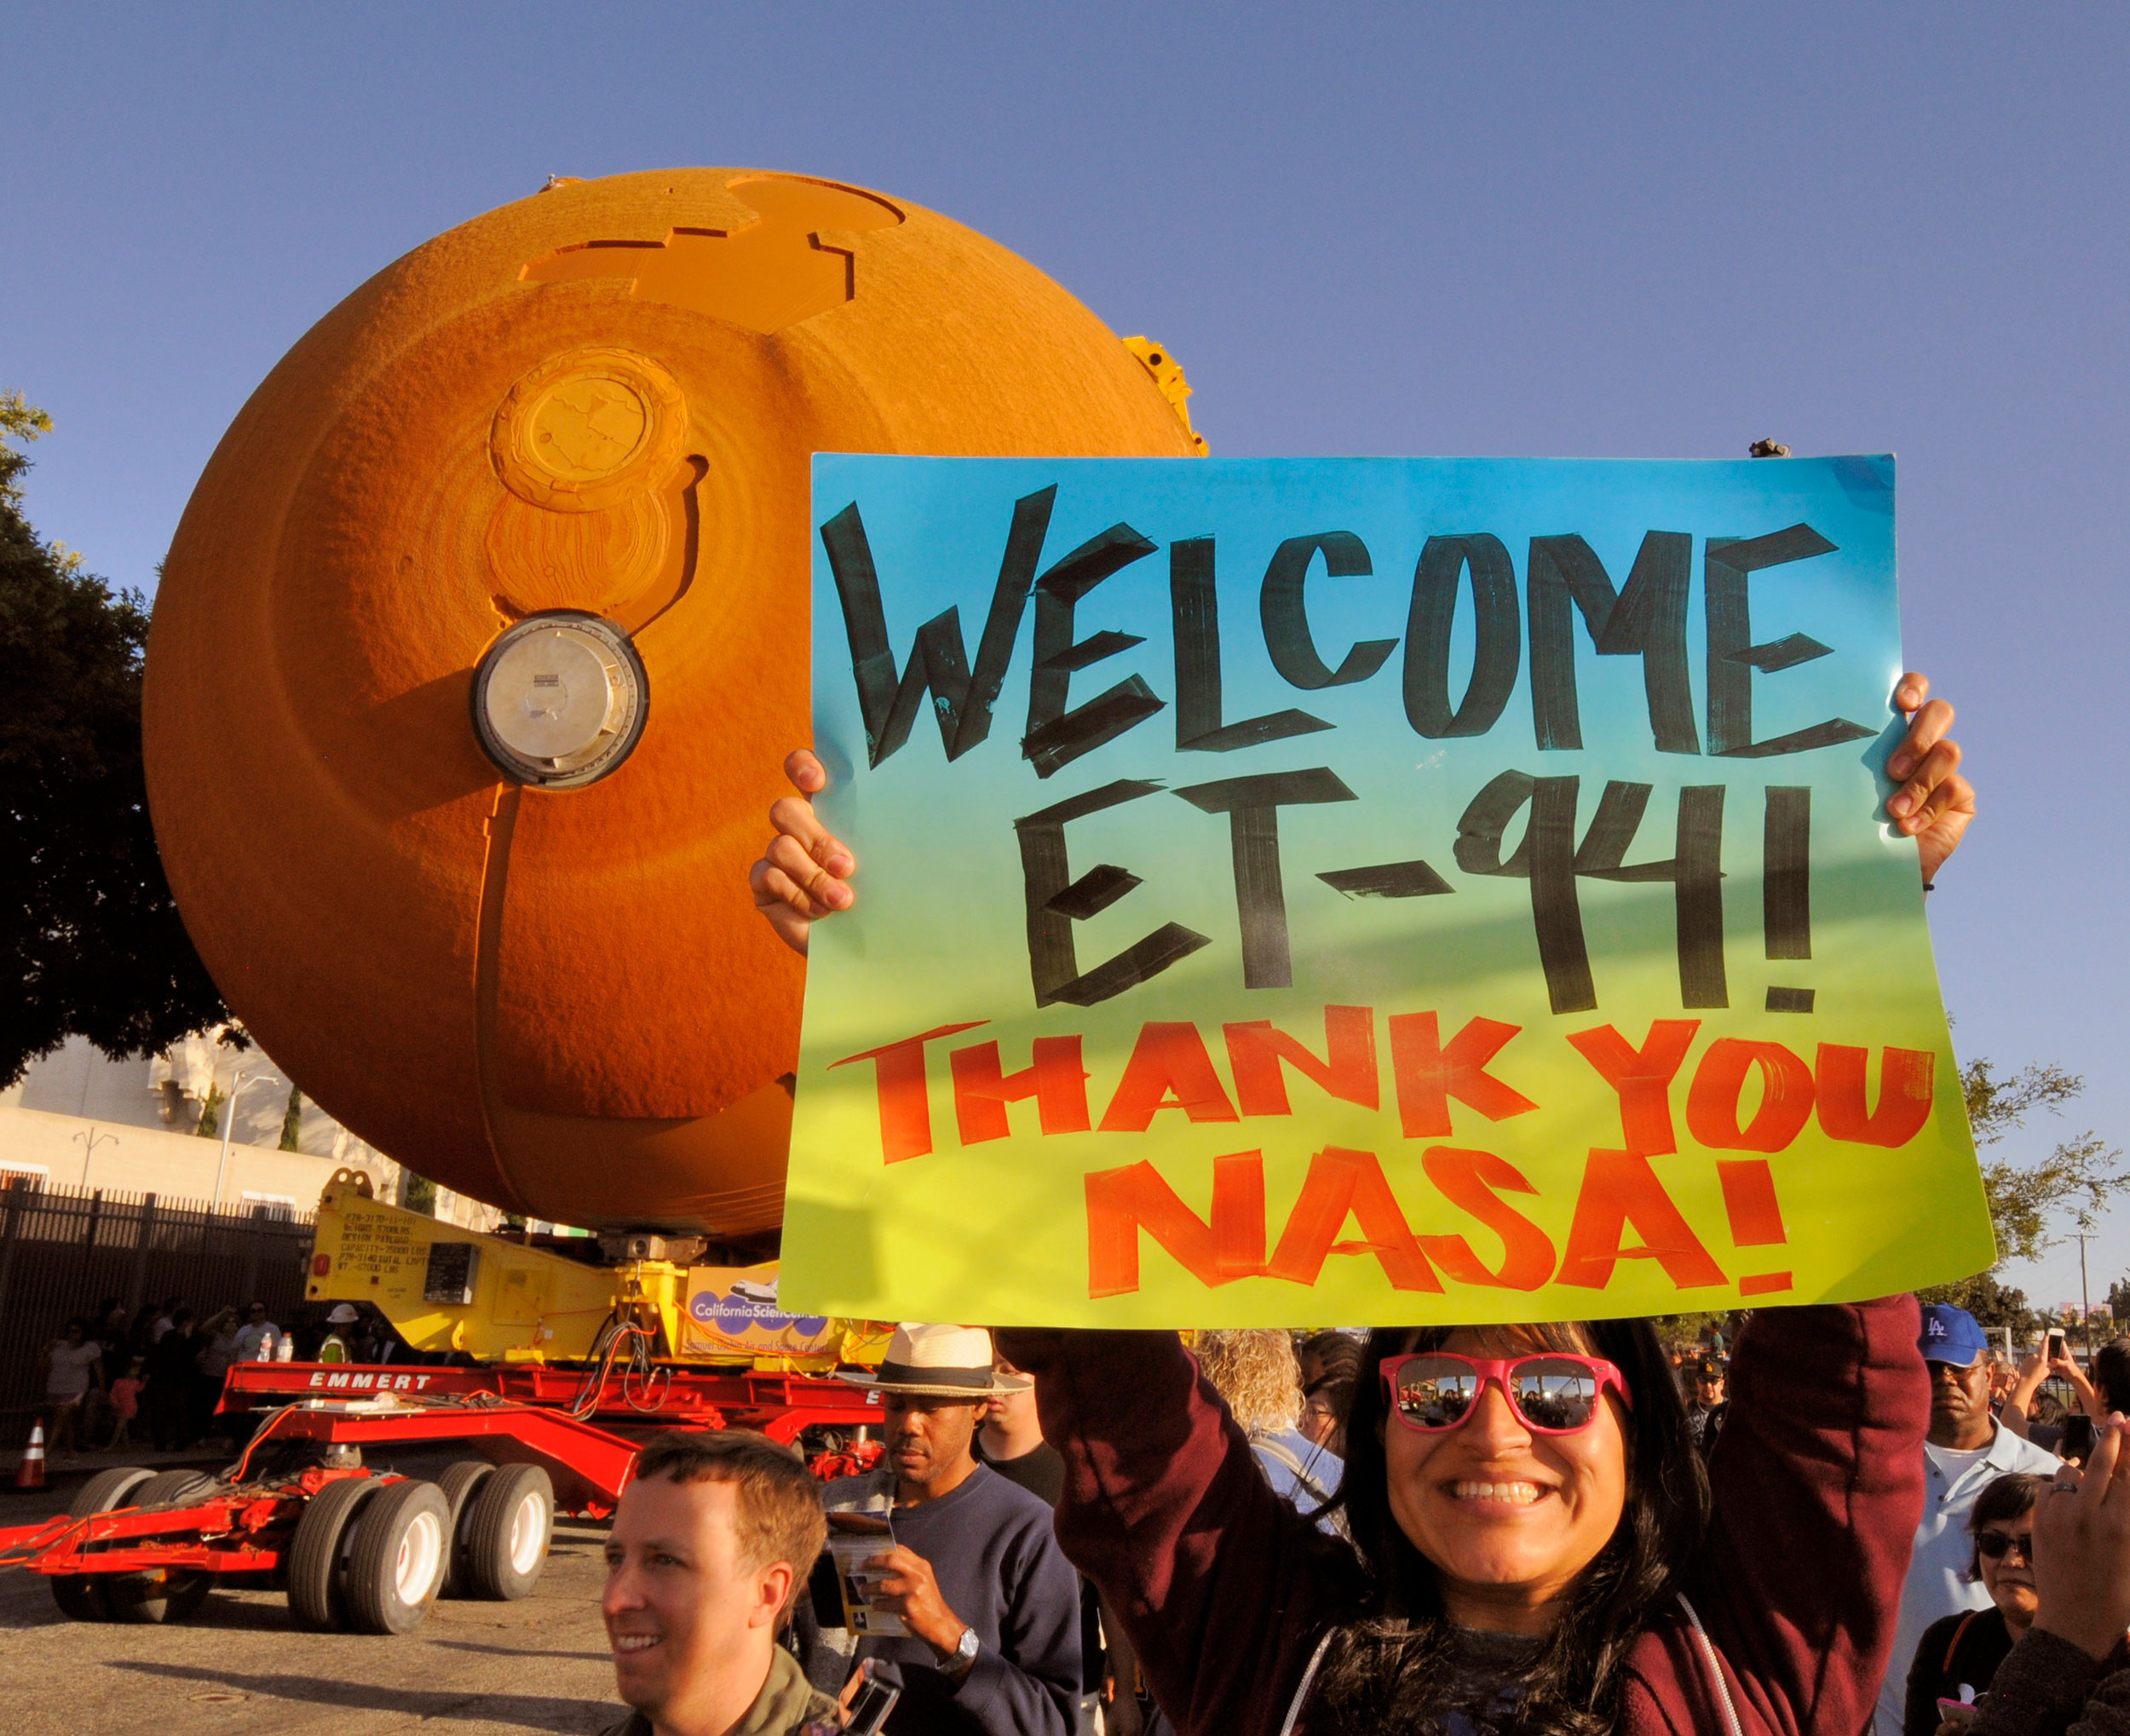 Crowds lined the 16-mile route as the last flight-ready Space Shuttle External Tank was paraded through the streets of Los Angeles earlier this year. Credit: Julian Leek/JNN